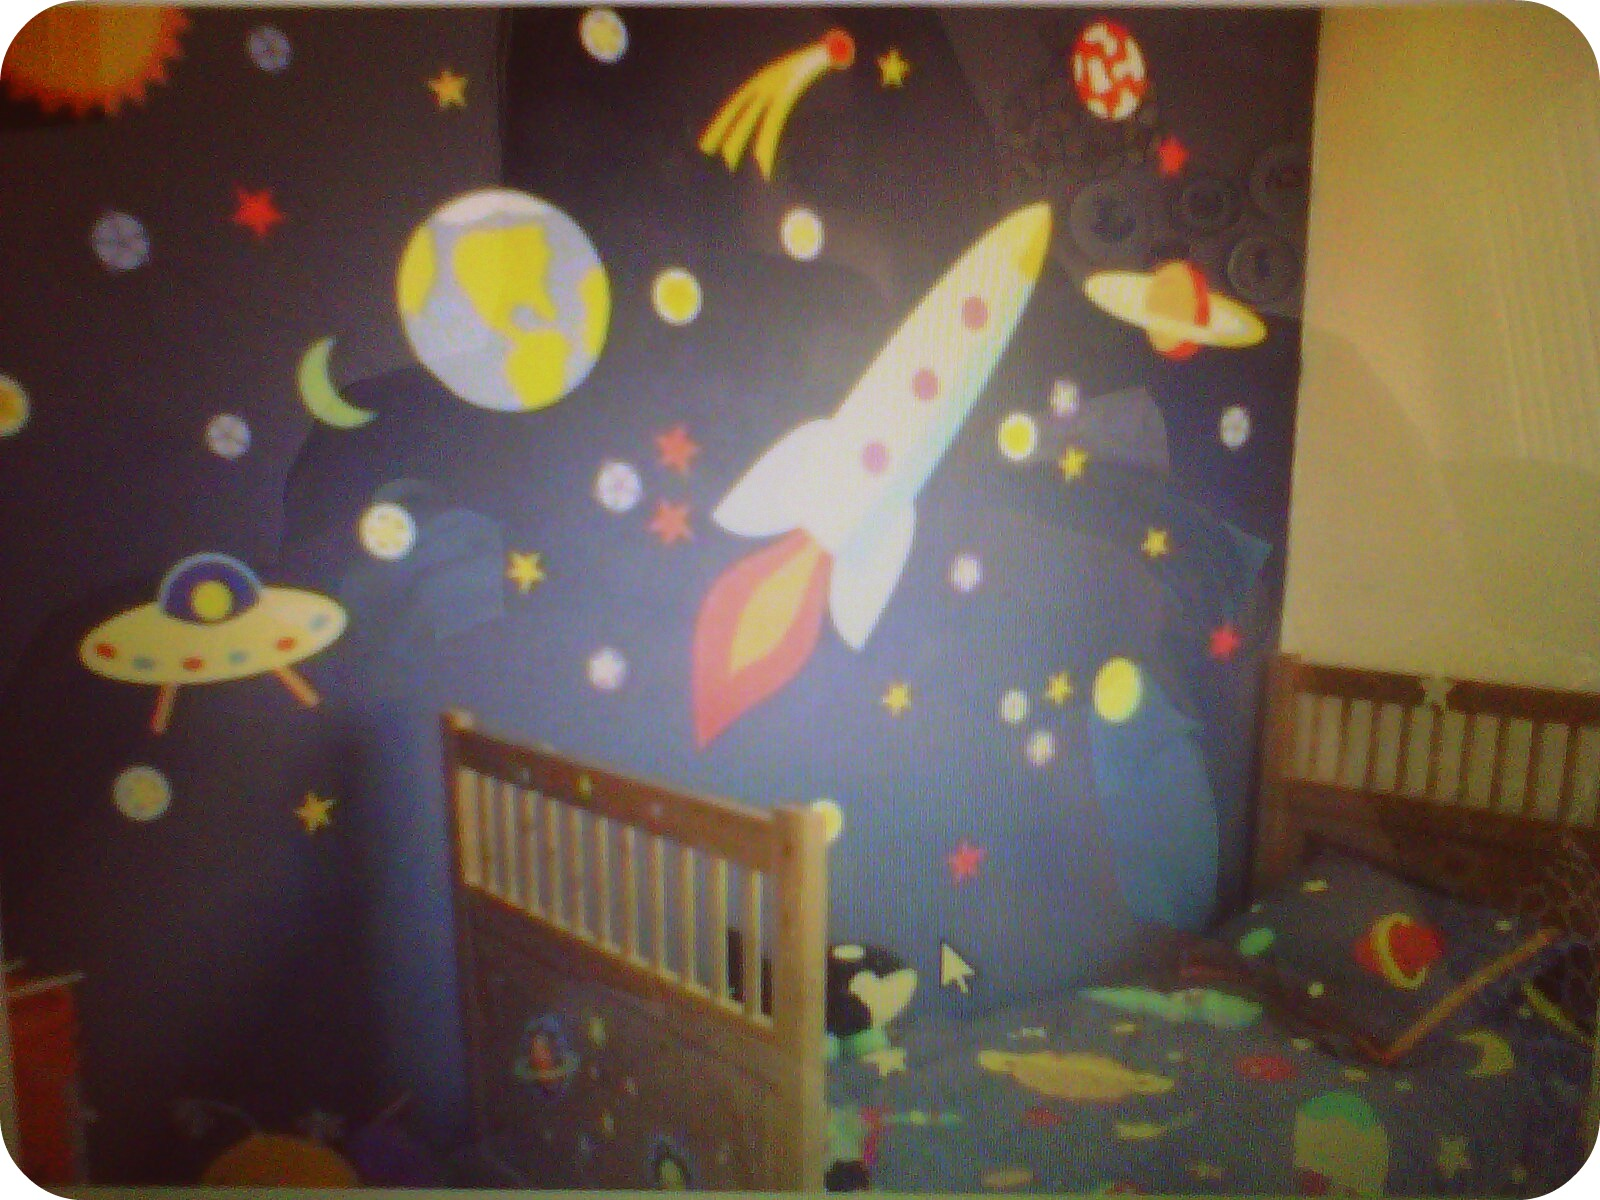 Whole Space Shuttle Bulletin Board (page 3) - Pics about space